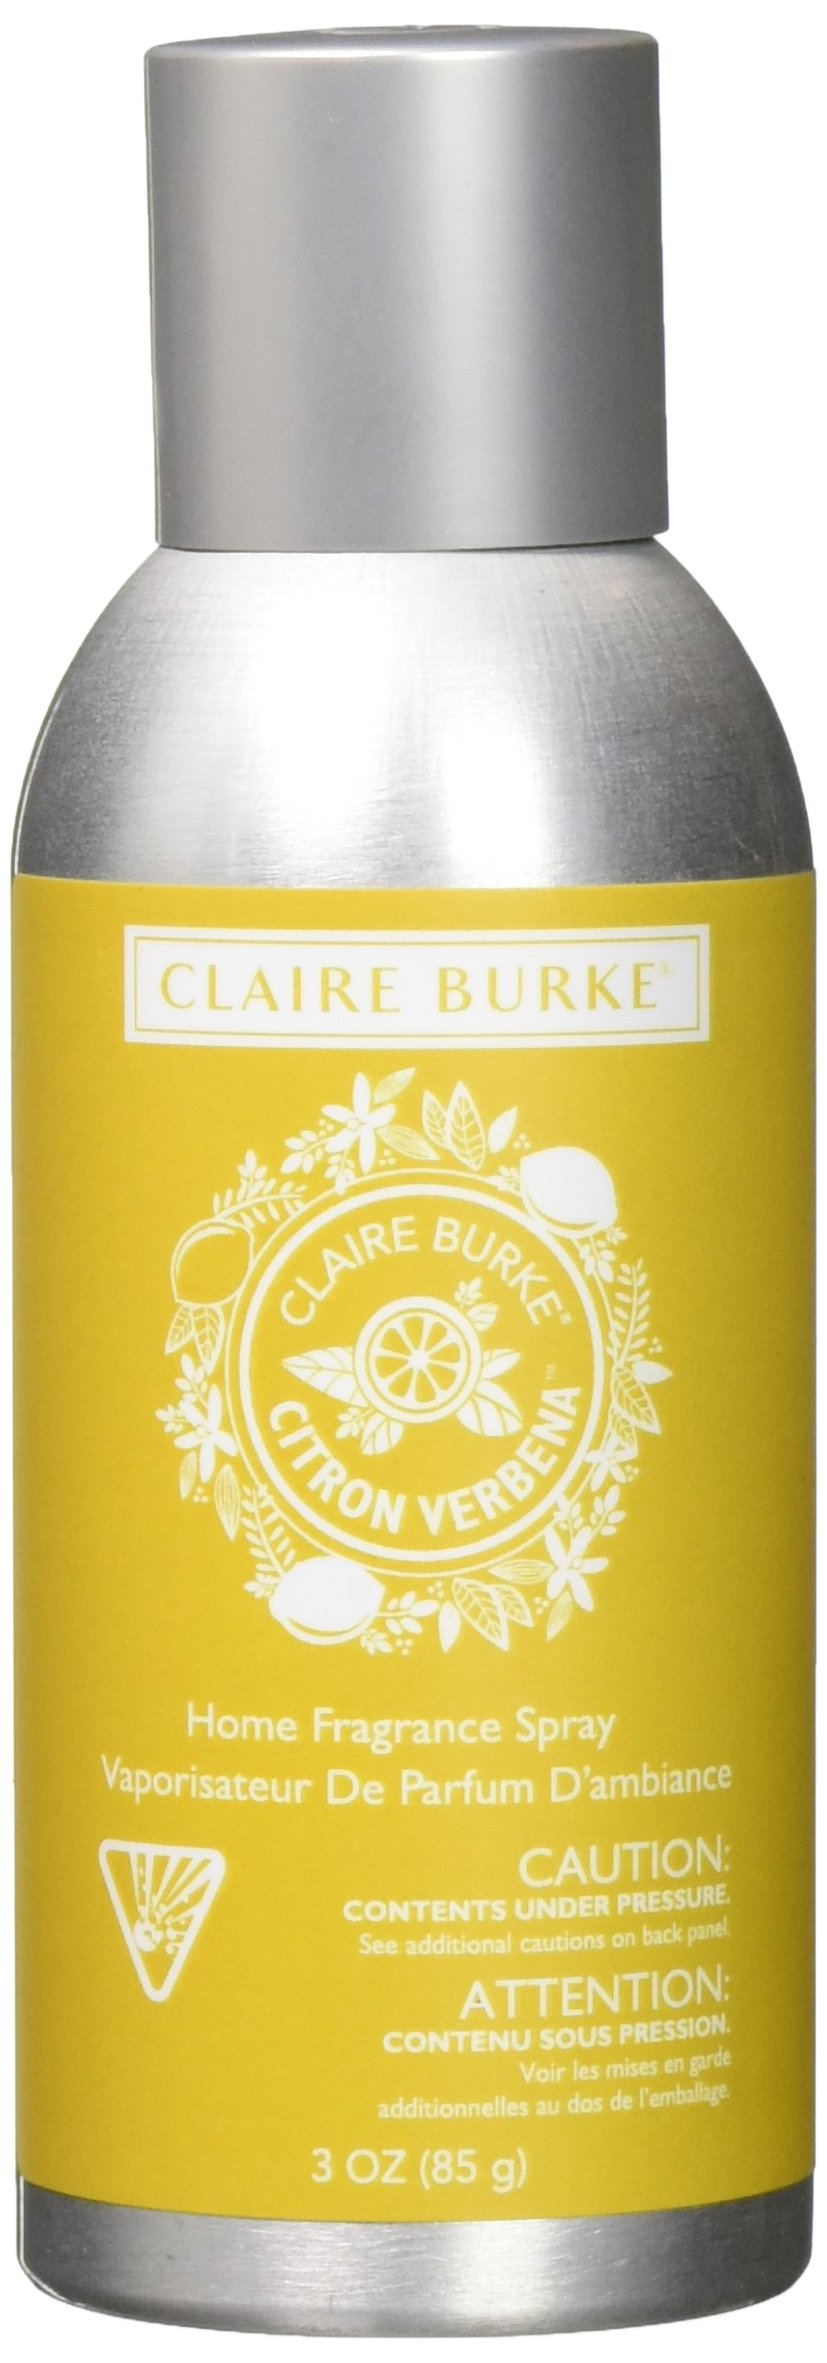 Claire Burke Sparkling Citron Verbena Spray Kitchen Décor Fragrance/Home Scent, Small, Yellow